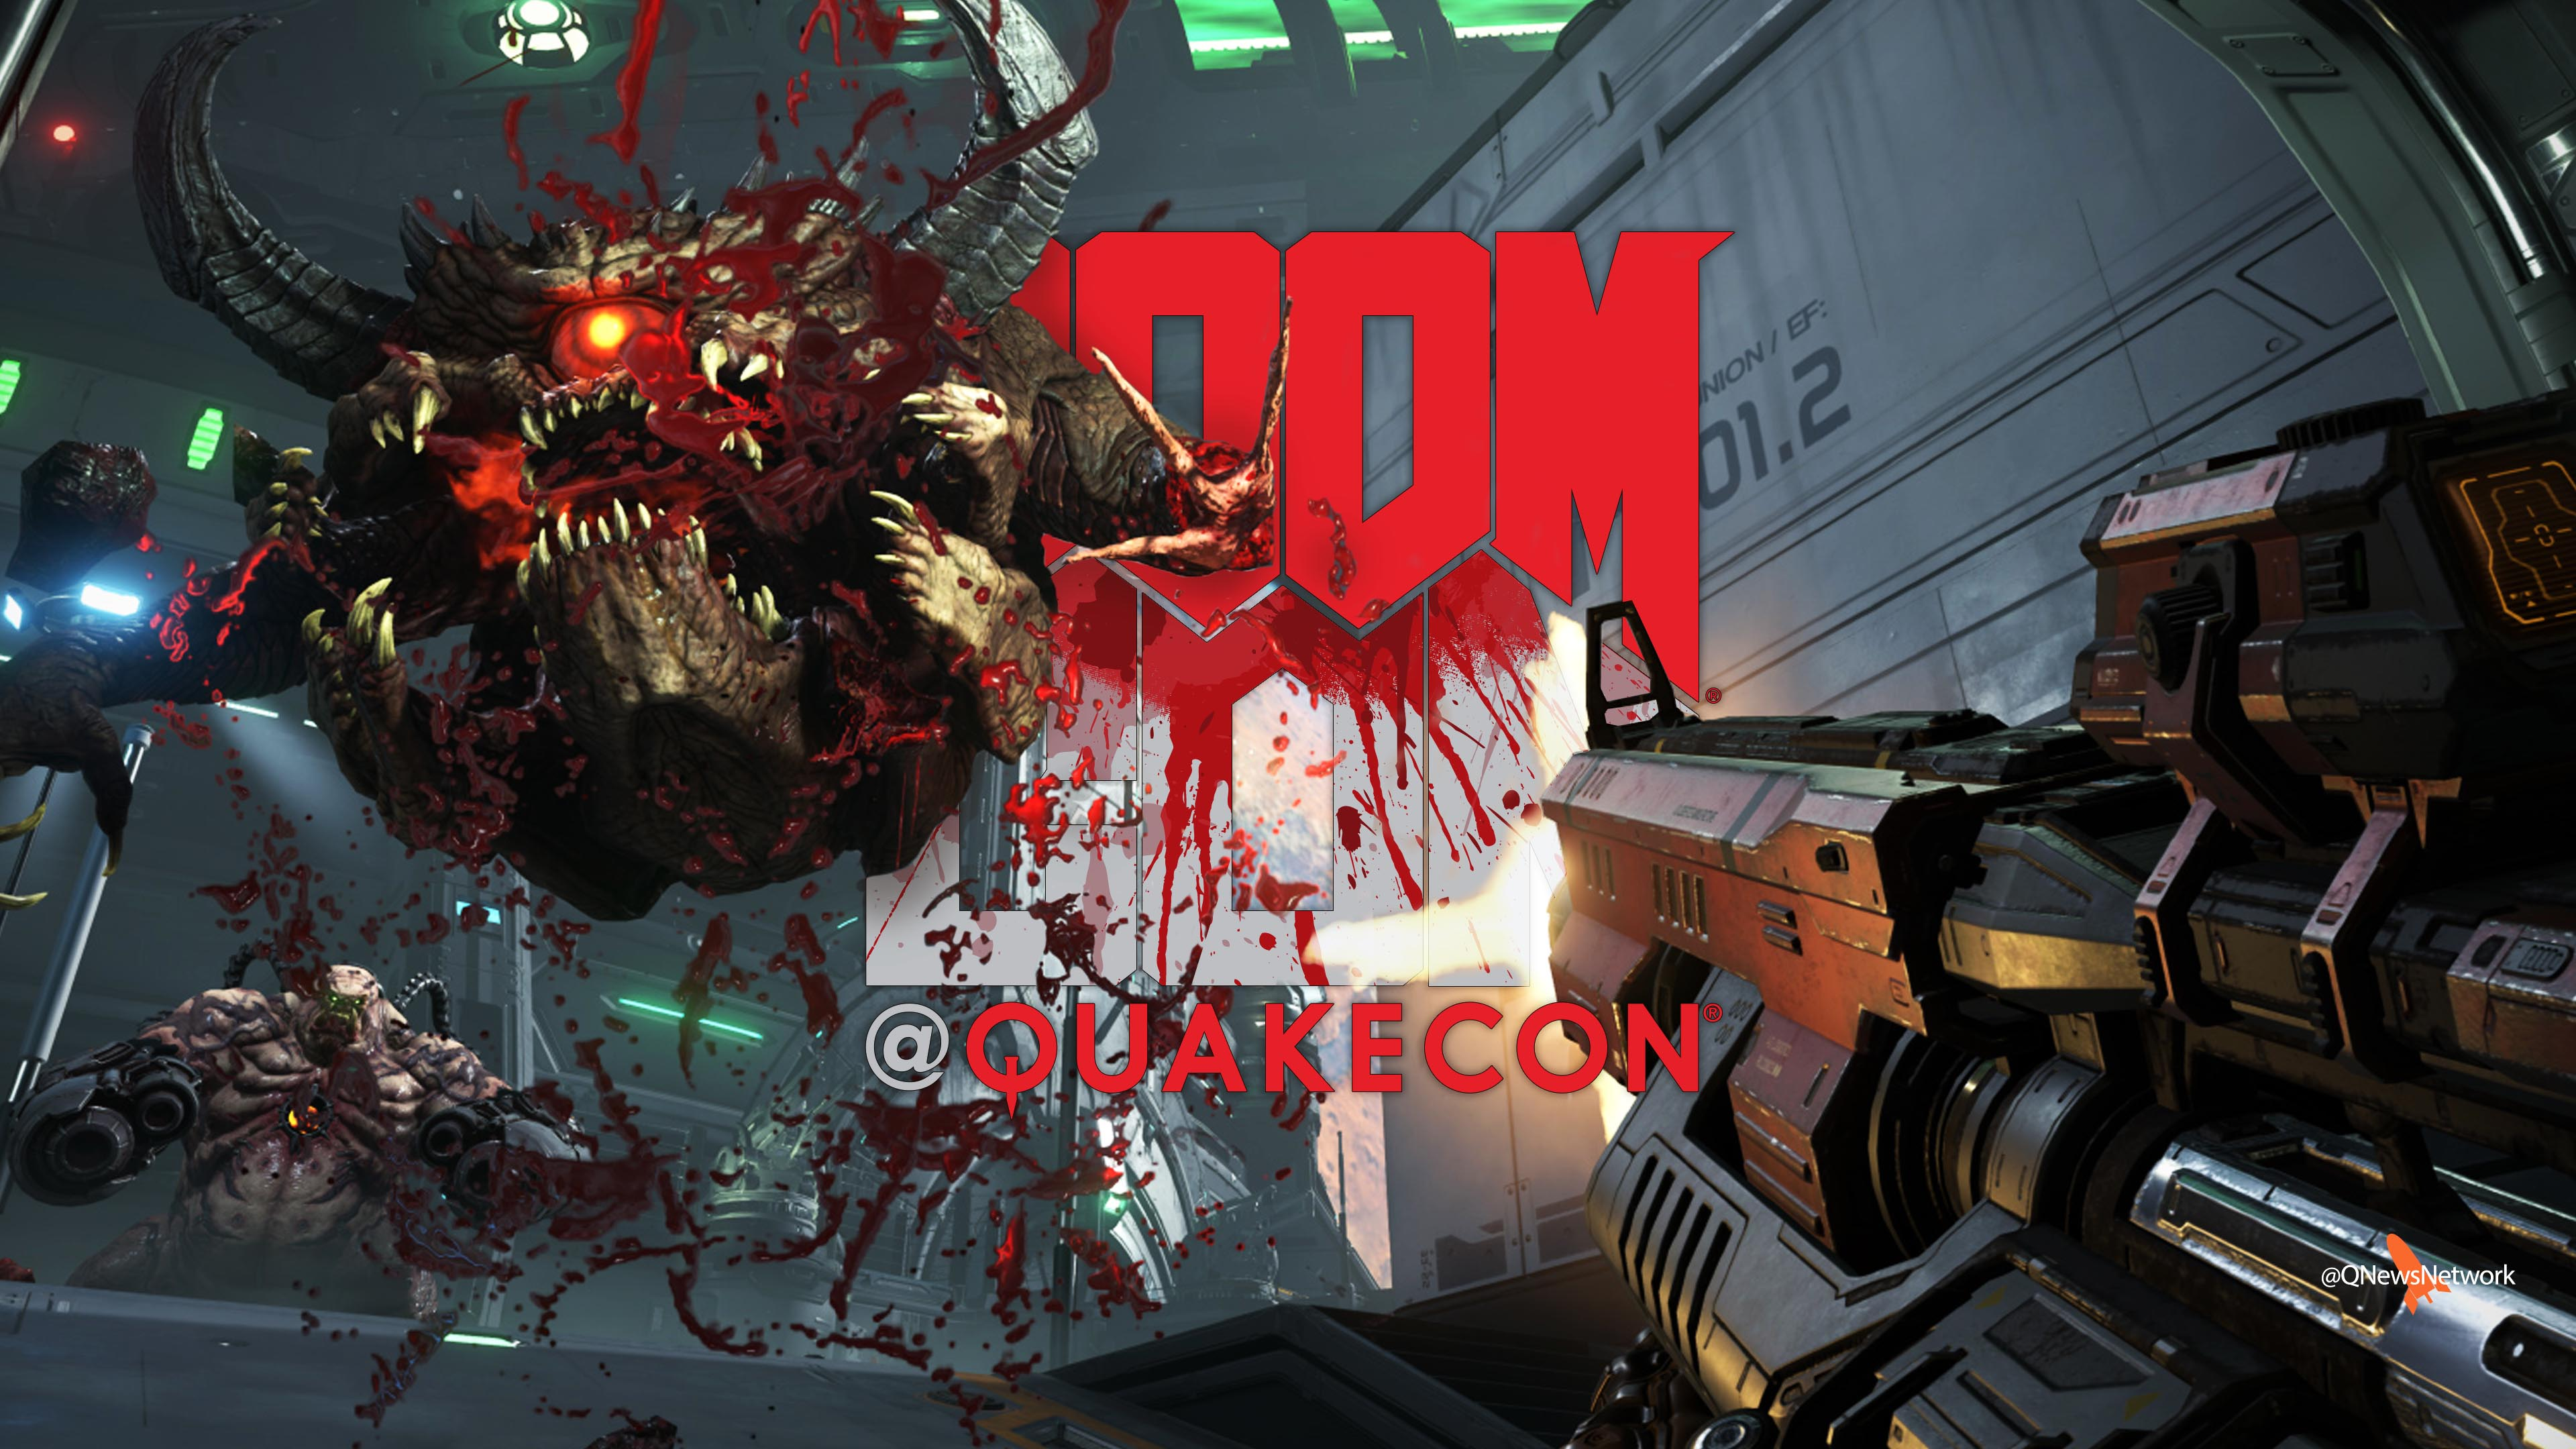 Doomcon wallpaper - cacodemon